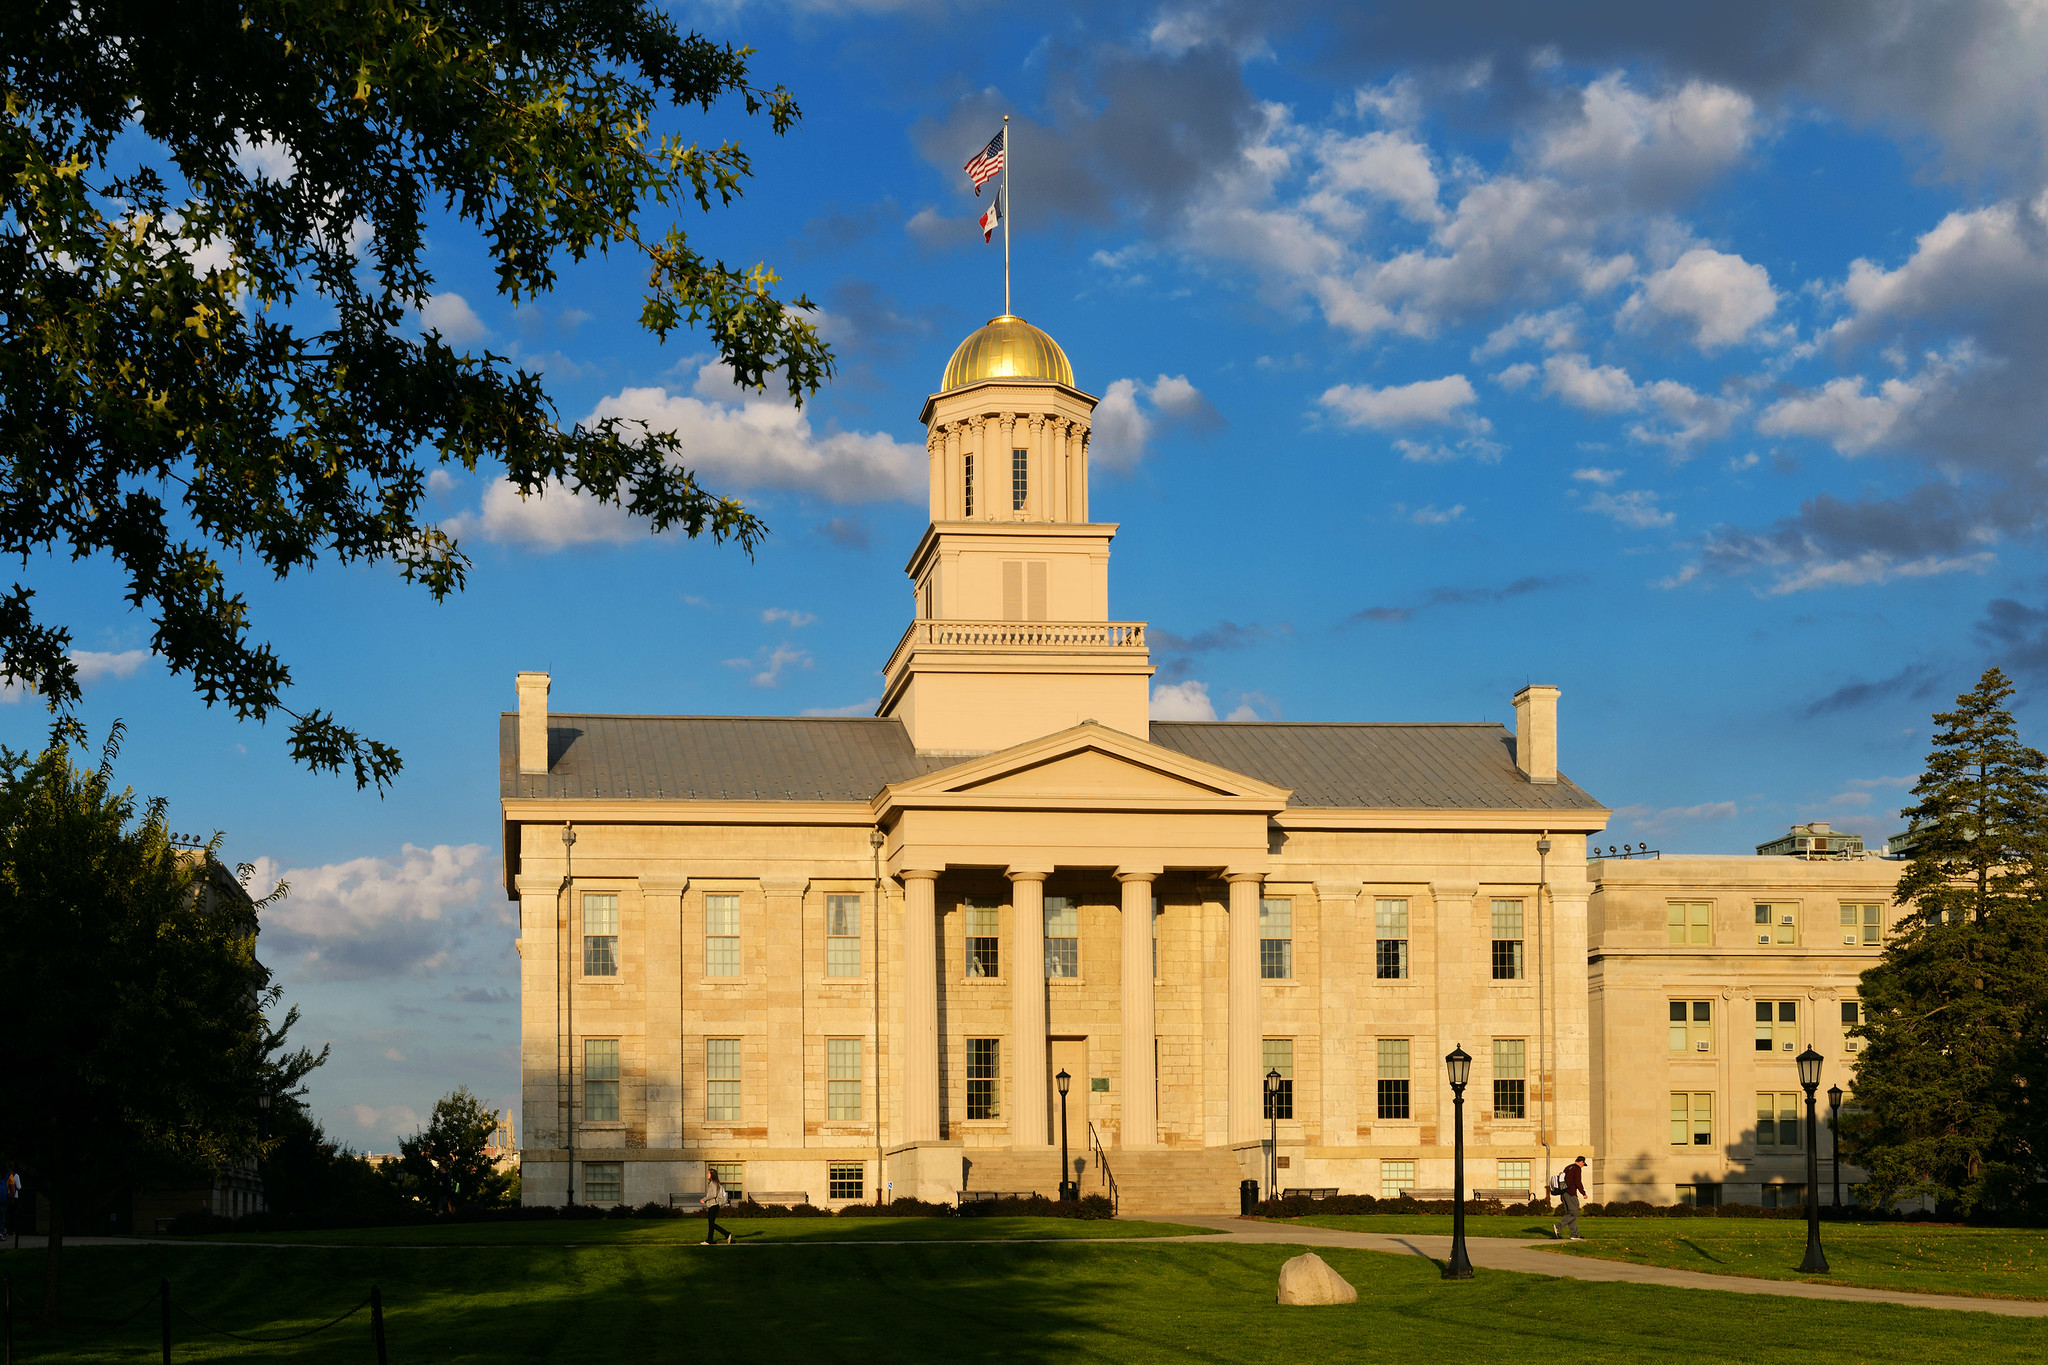 Student leaders at Iowa's public universities are disappointed and anxious about potential tuition increase